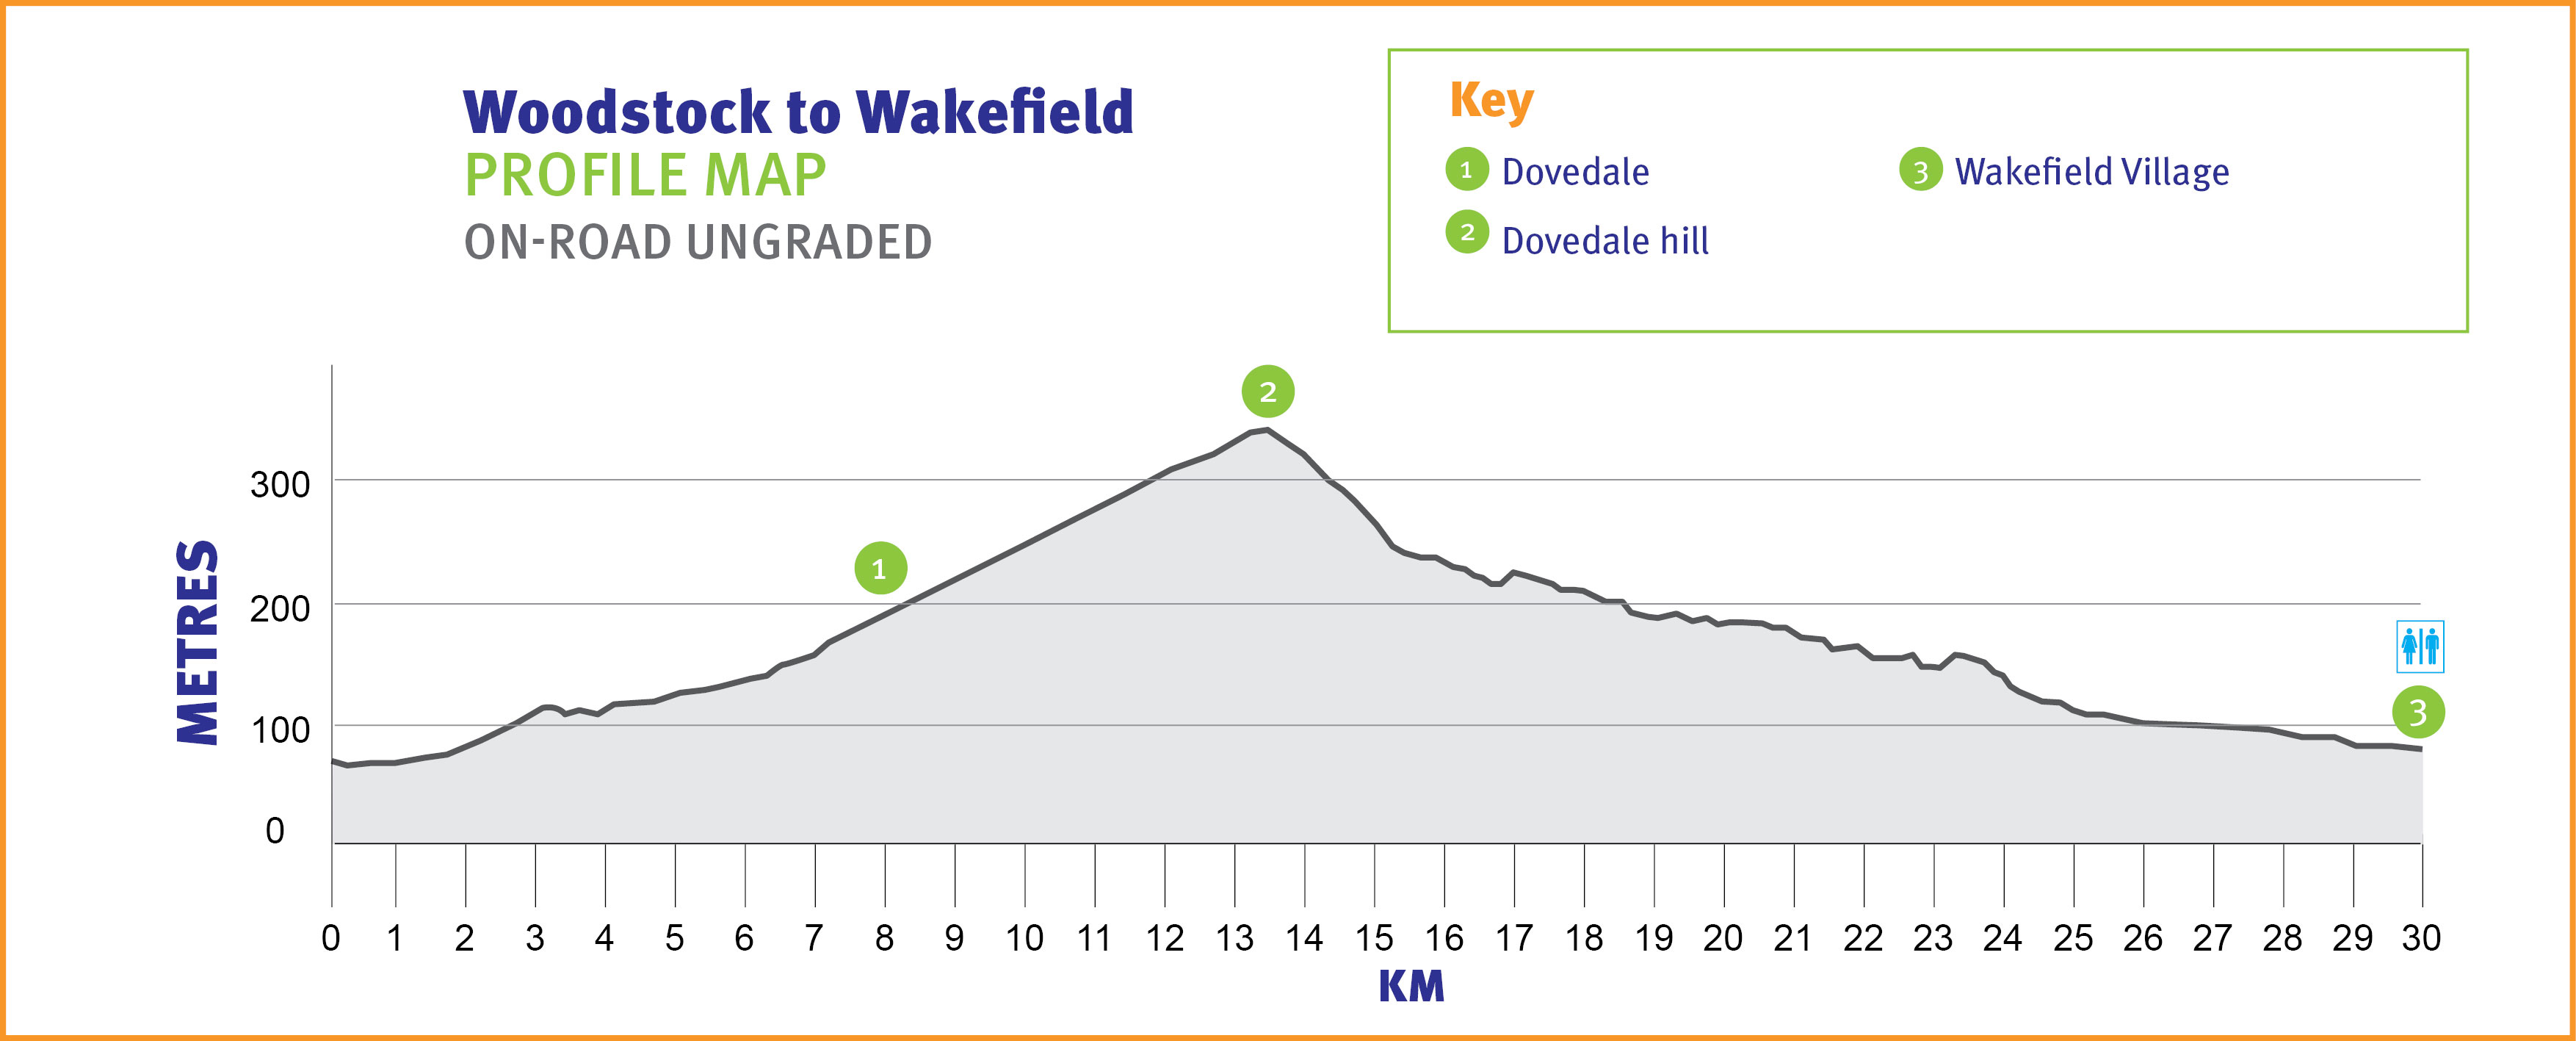 Woodstock to Wakefield Profile Map